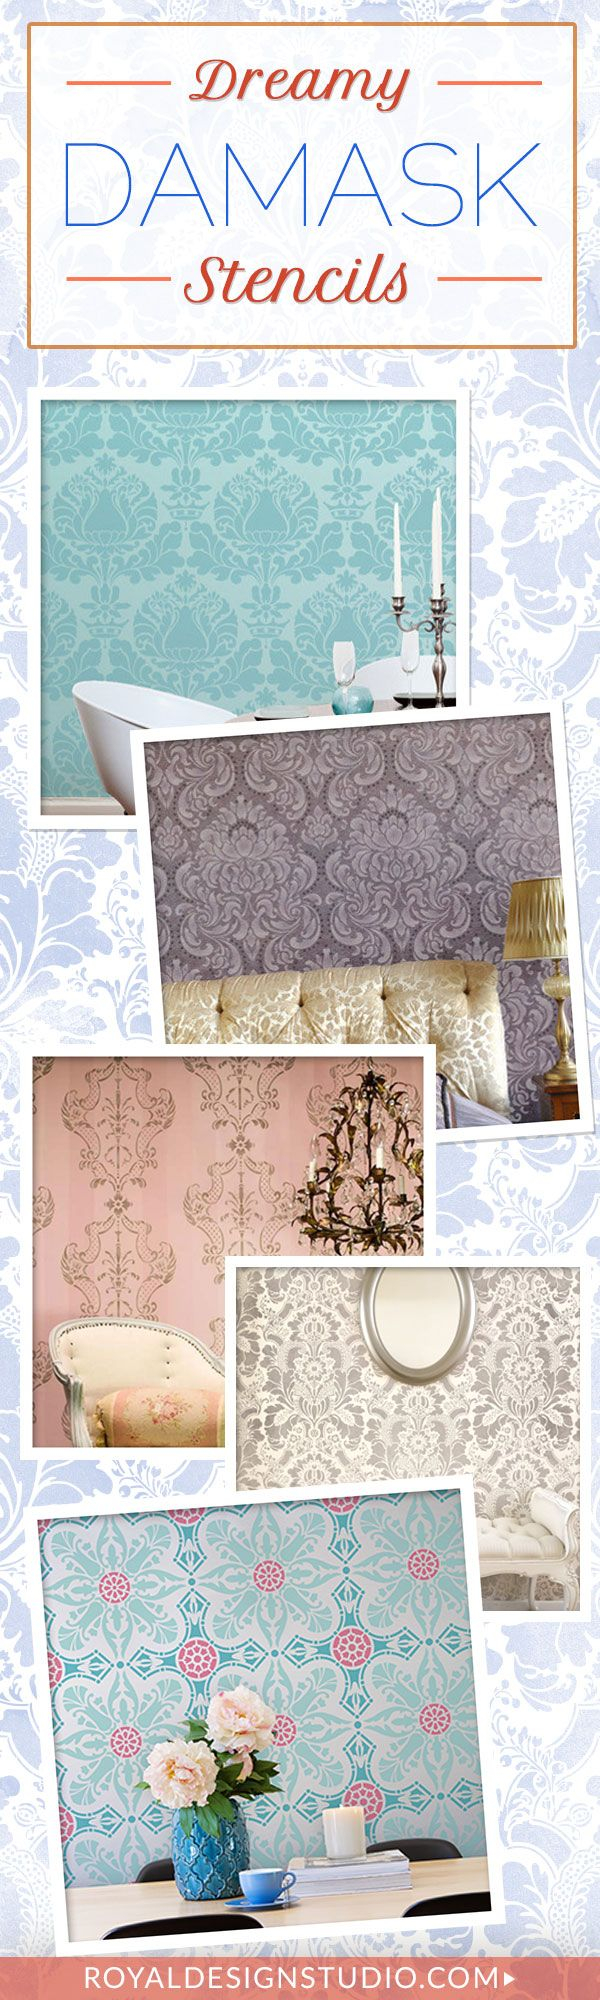 Best 25 damask wall stencils ideas on pinterest damask wall damask wall stencils for easy diy decorating wall decor designer wallpaper stenciling and painting pattern amipublicfo Images